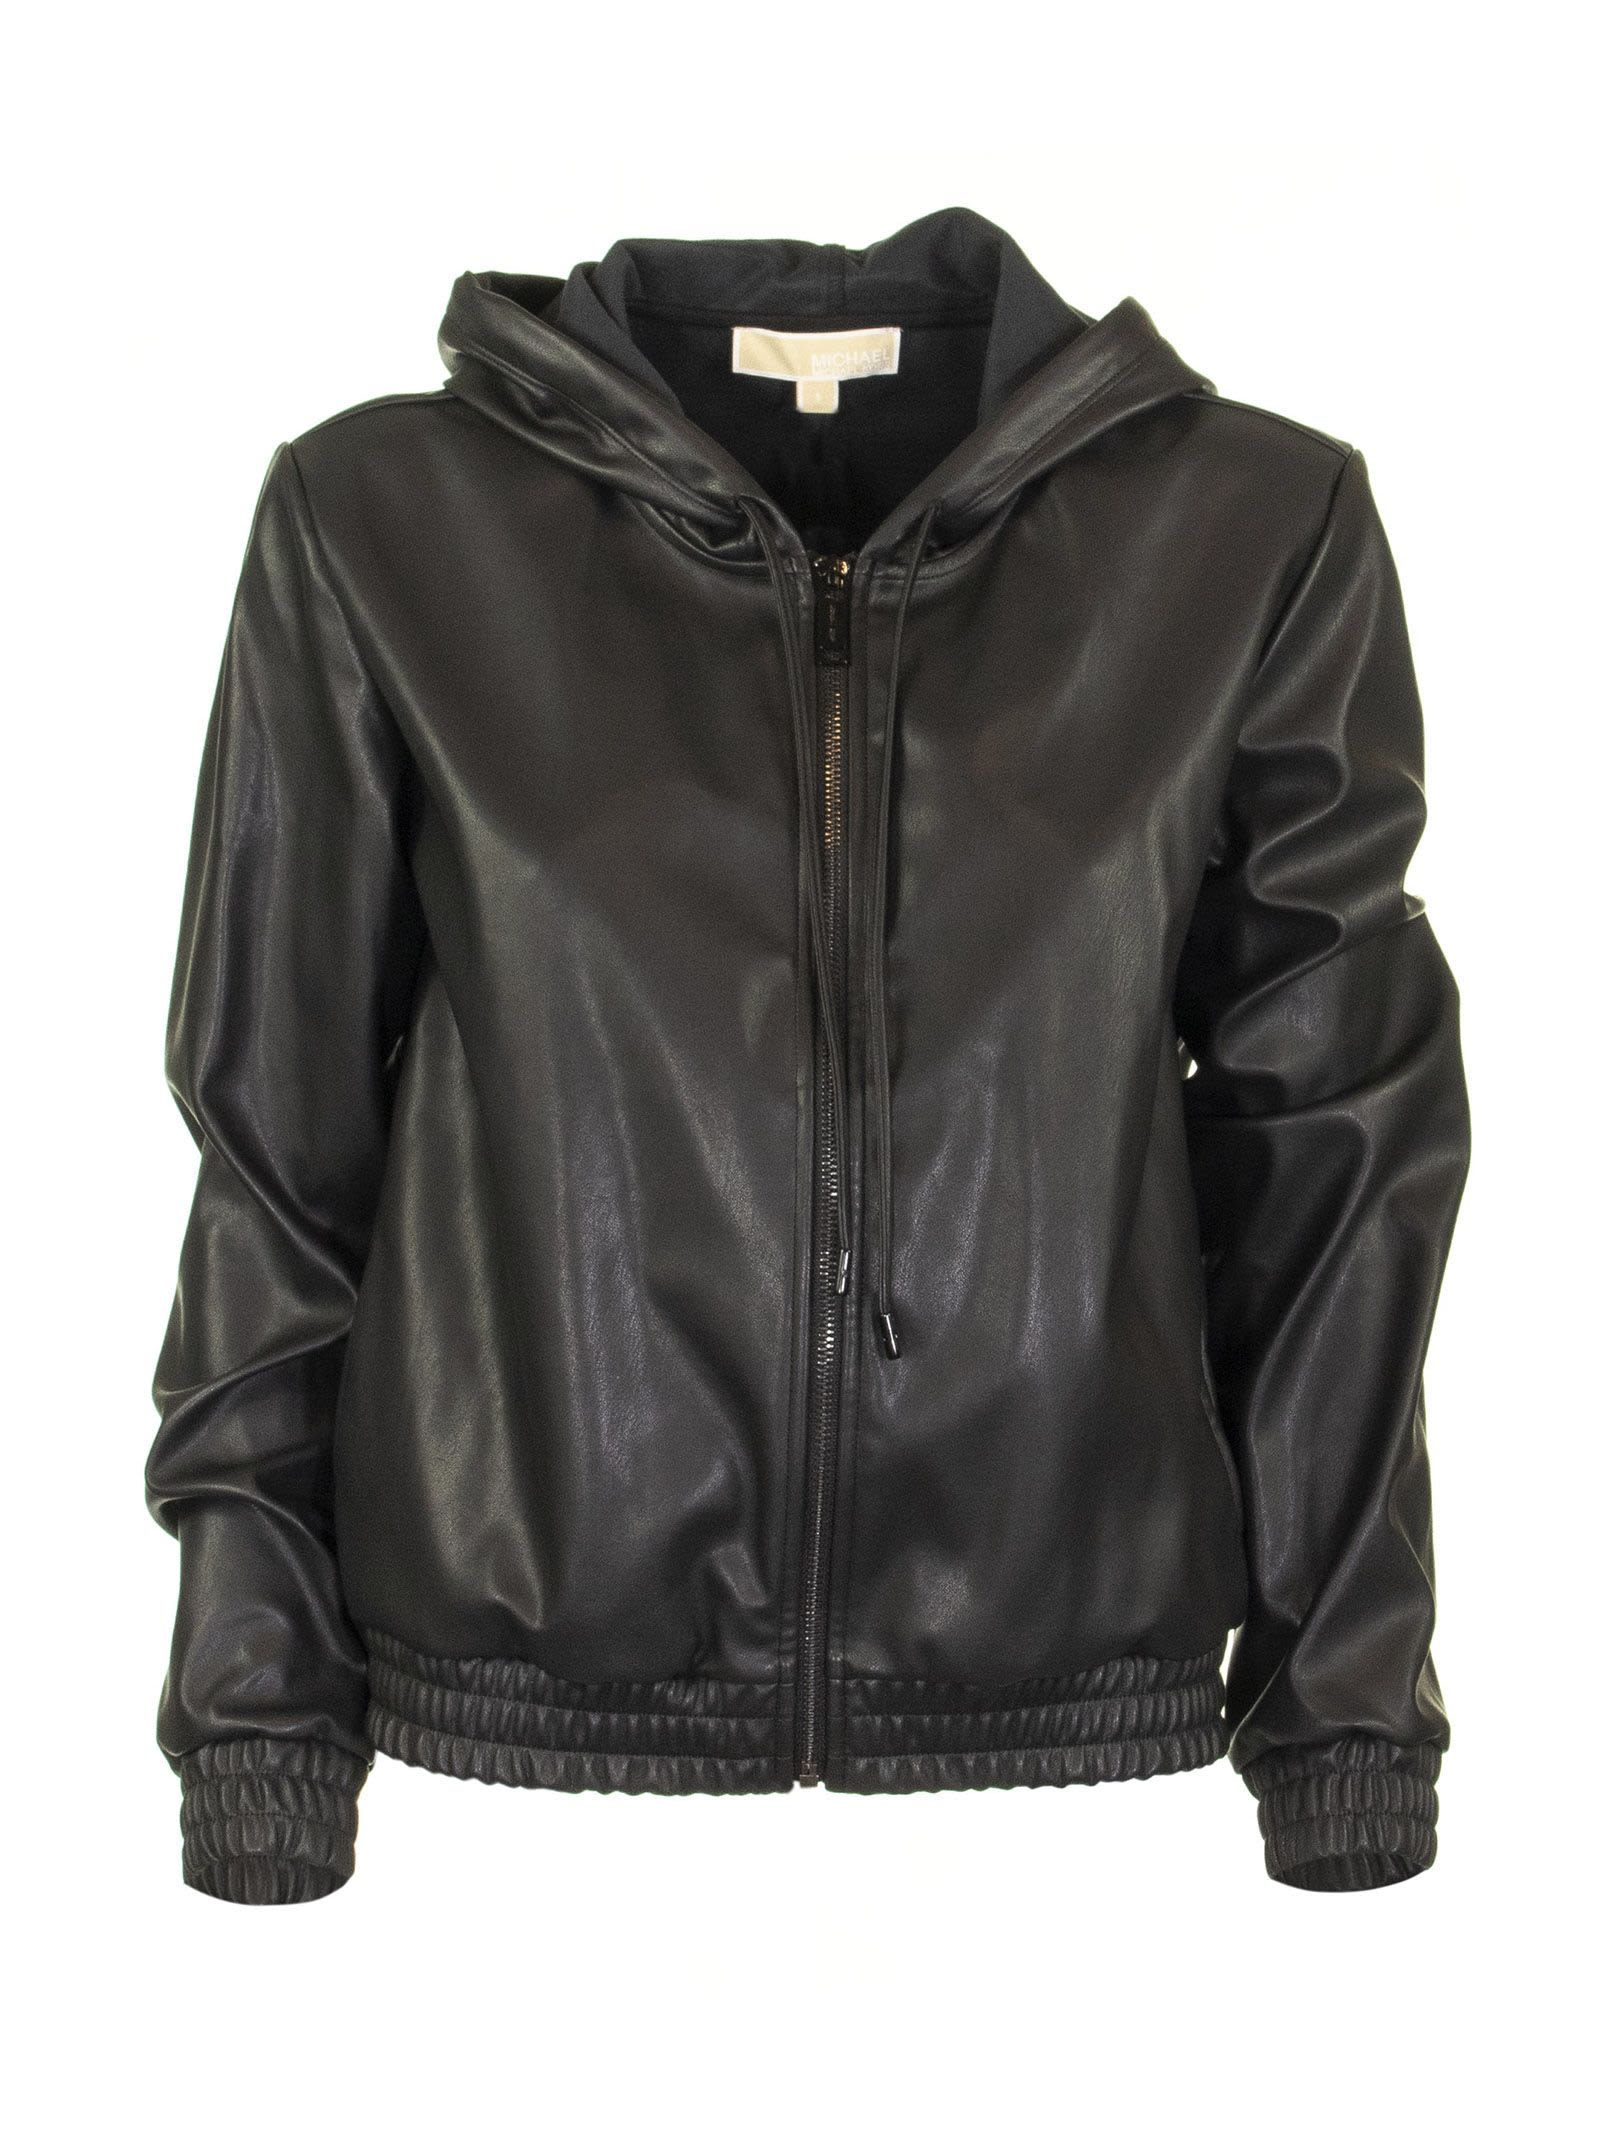 Michael Kors Faux Leather Zip-up Hoodie